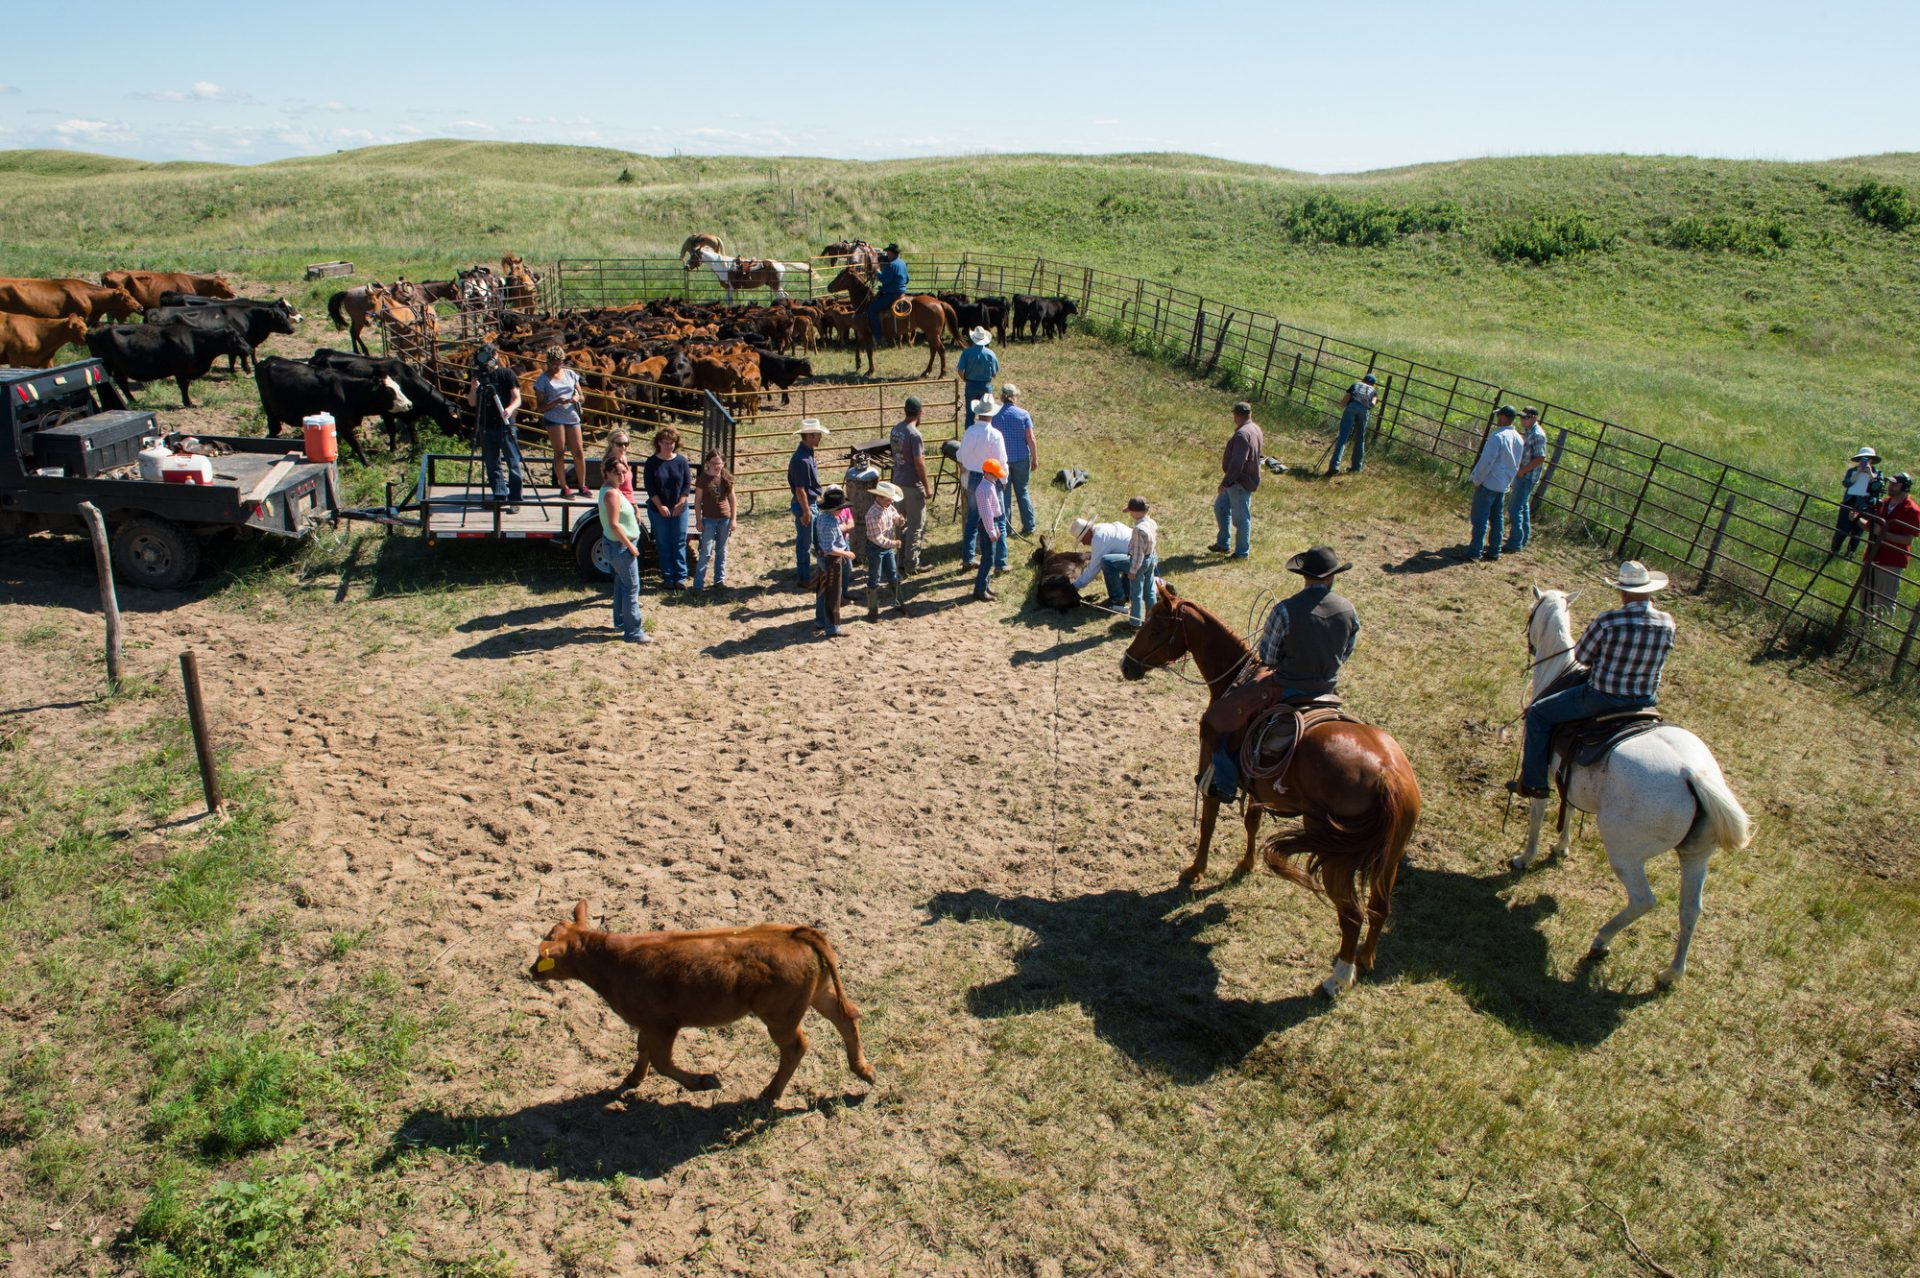 Photo: Ranchers working with cattle.